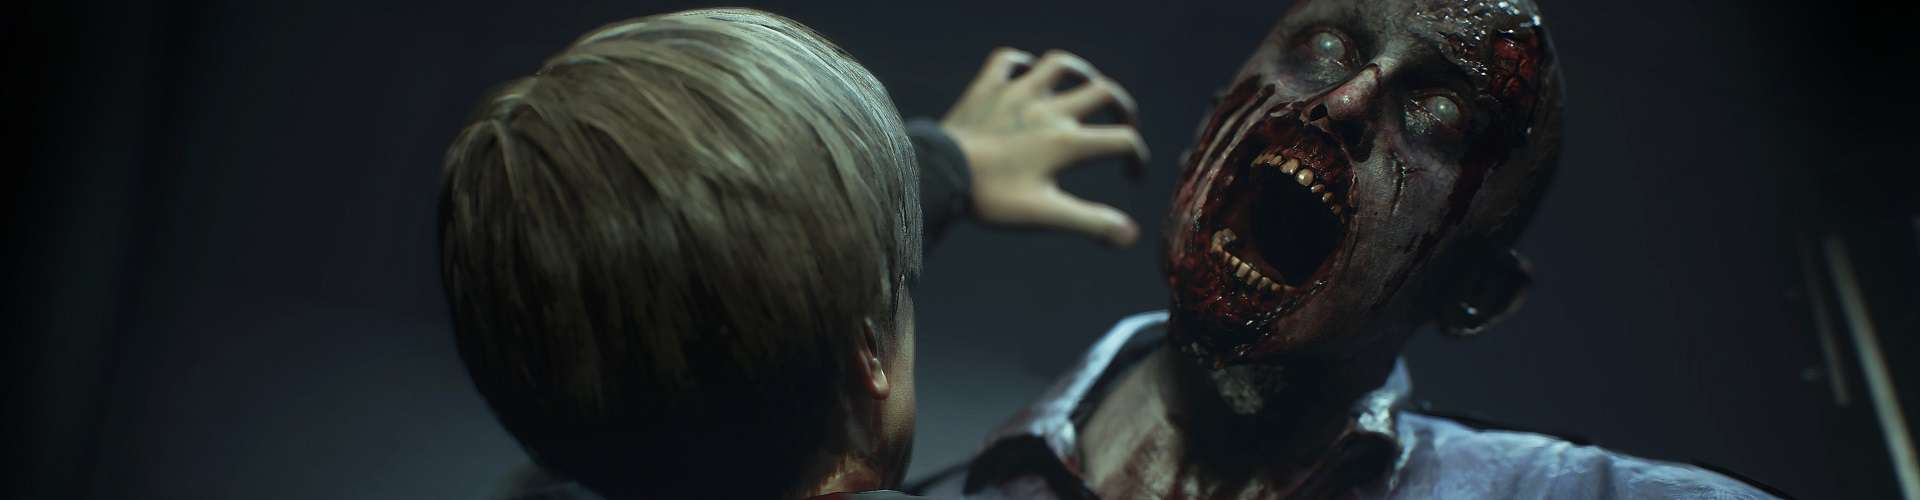 Resident Evil 2 Release Date, News, Trailer, and Rumors